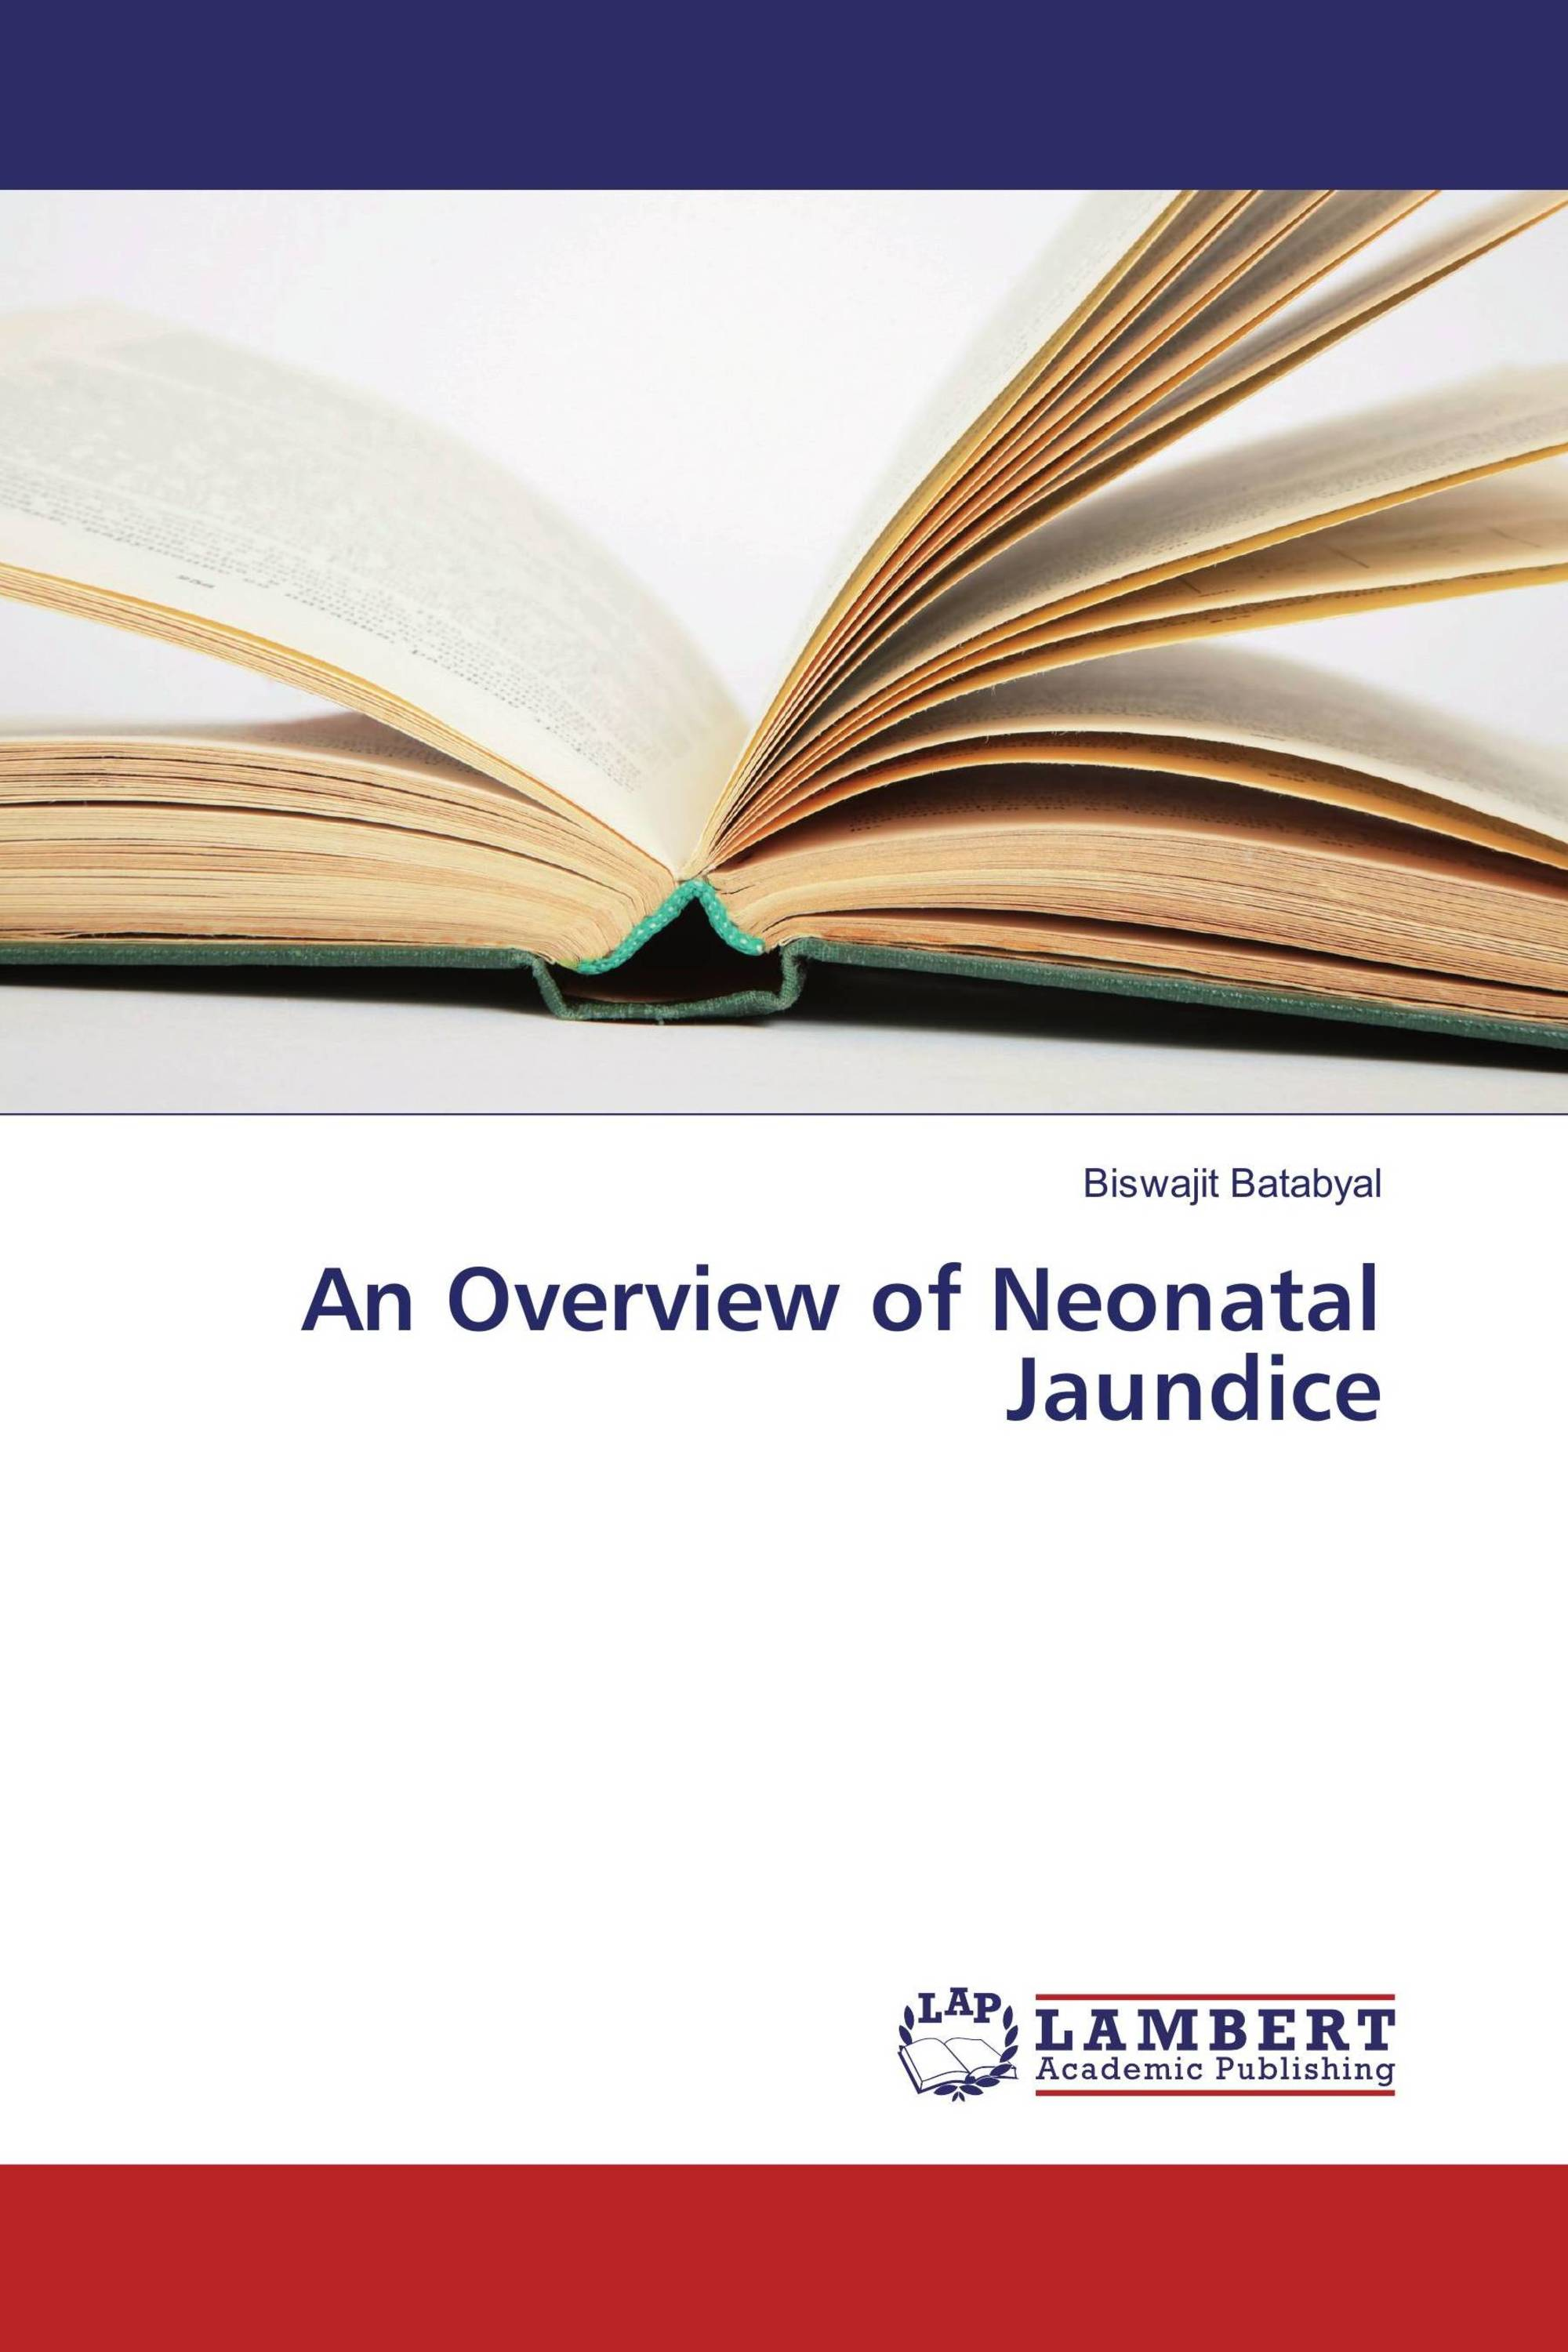 an overview of jaundice This often causes jaundice, a yellowing of the skin and whites of the eyes, and is  usually considered a  image description not available.